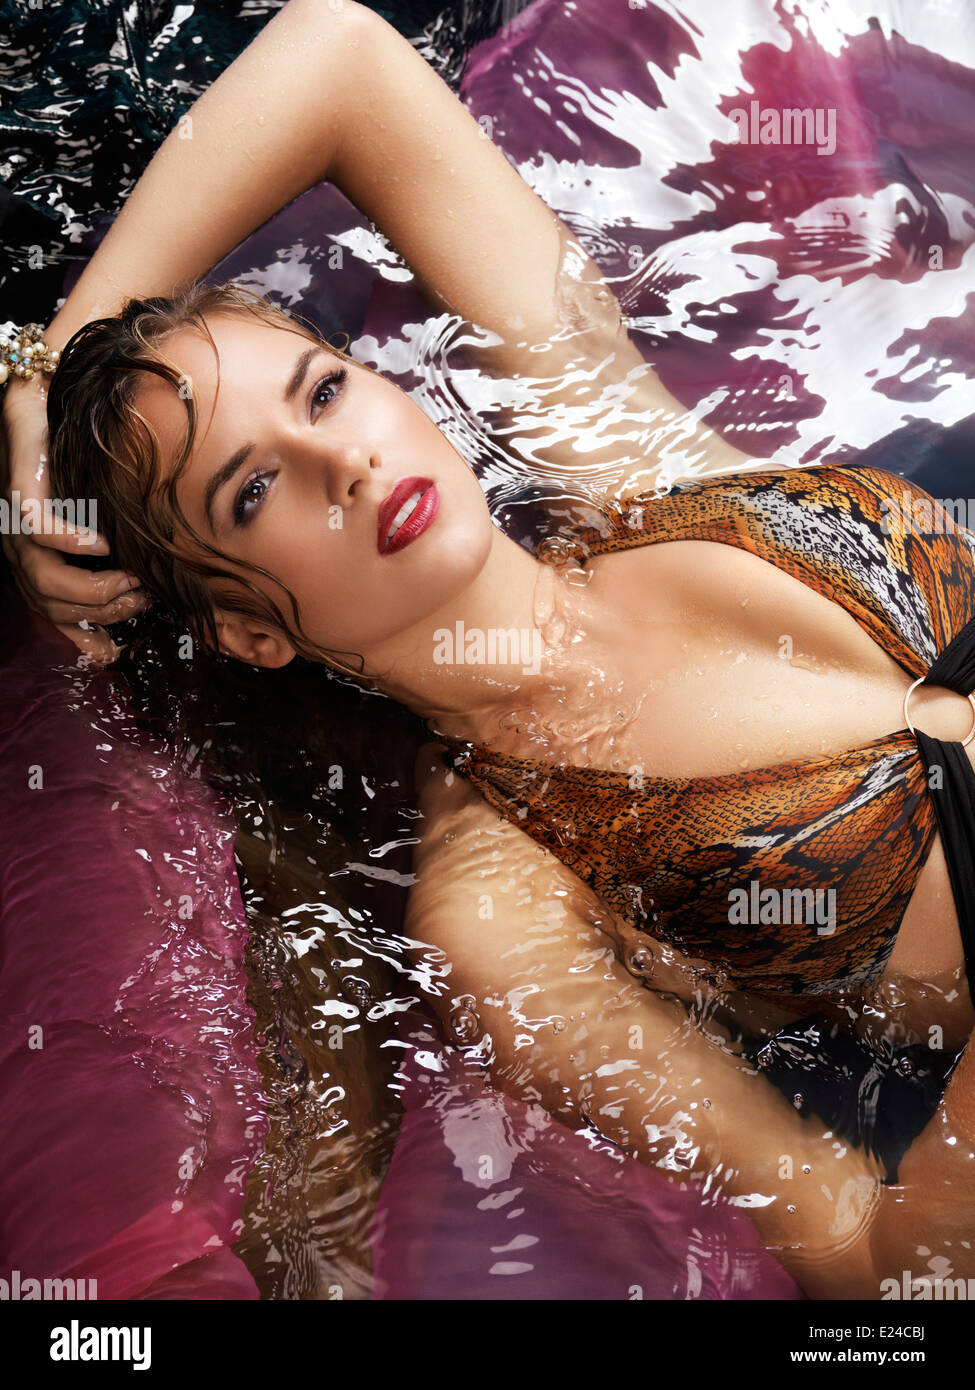 Beauty portrait of a young woman in a swimsuit lying in water - Stock Image